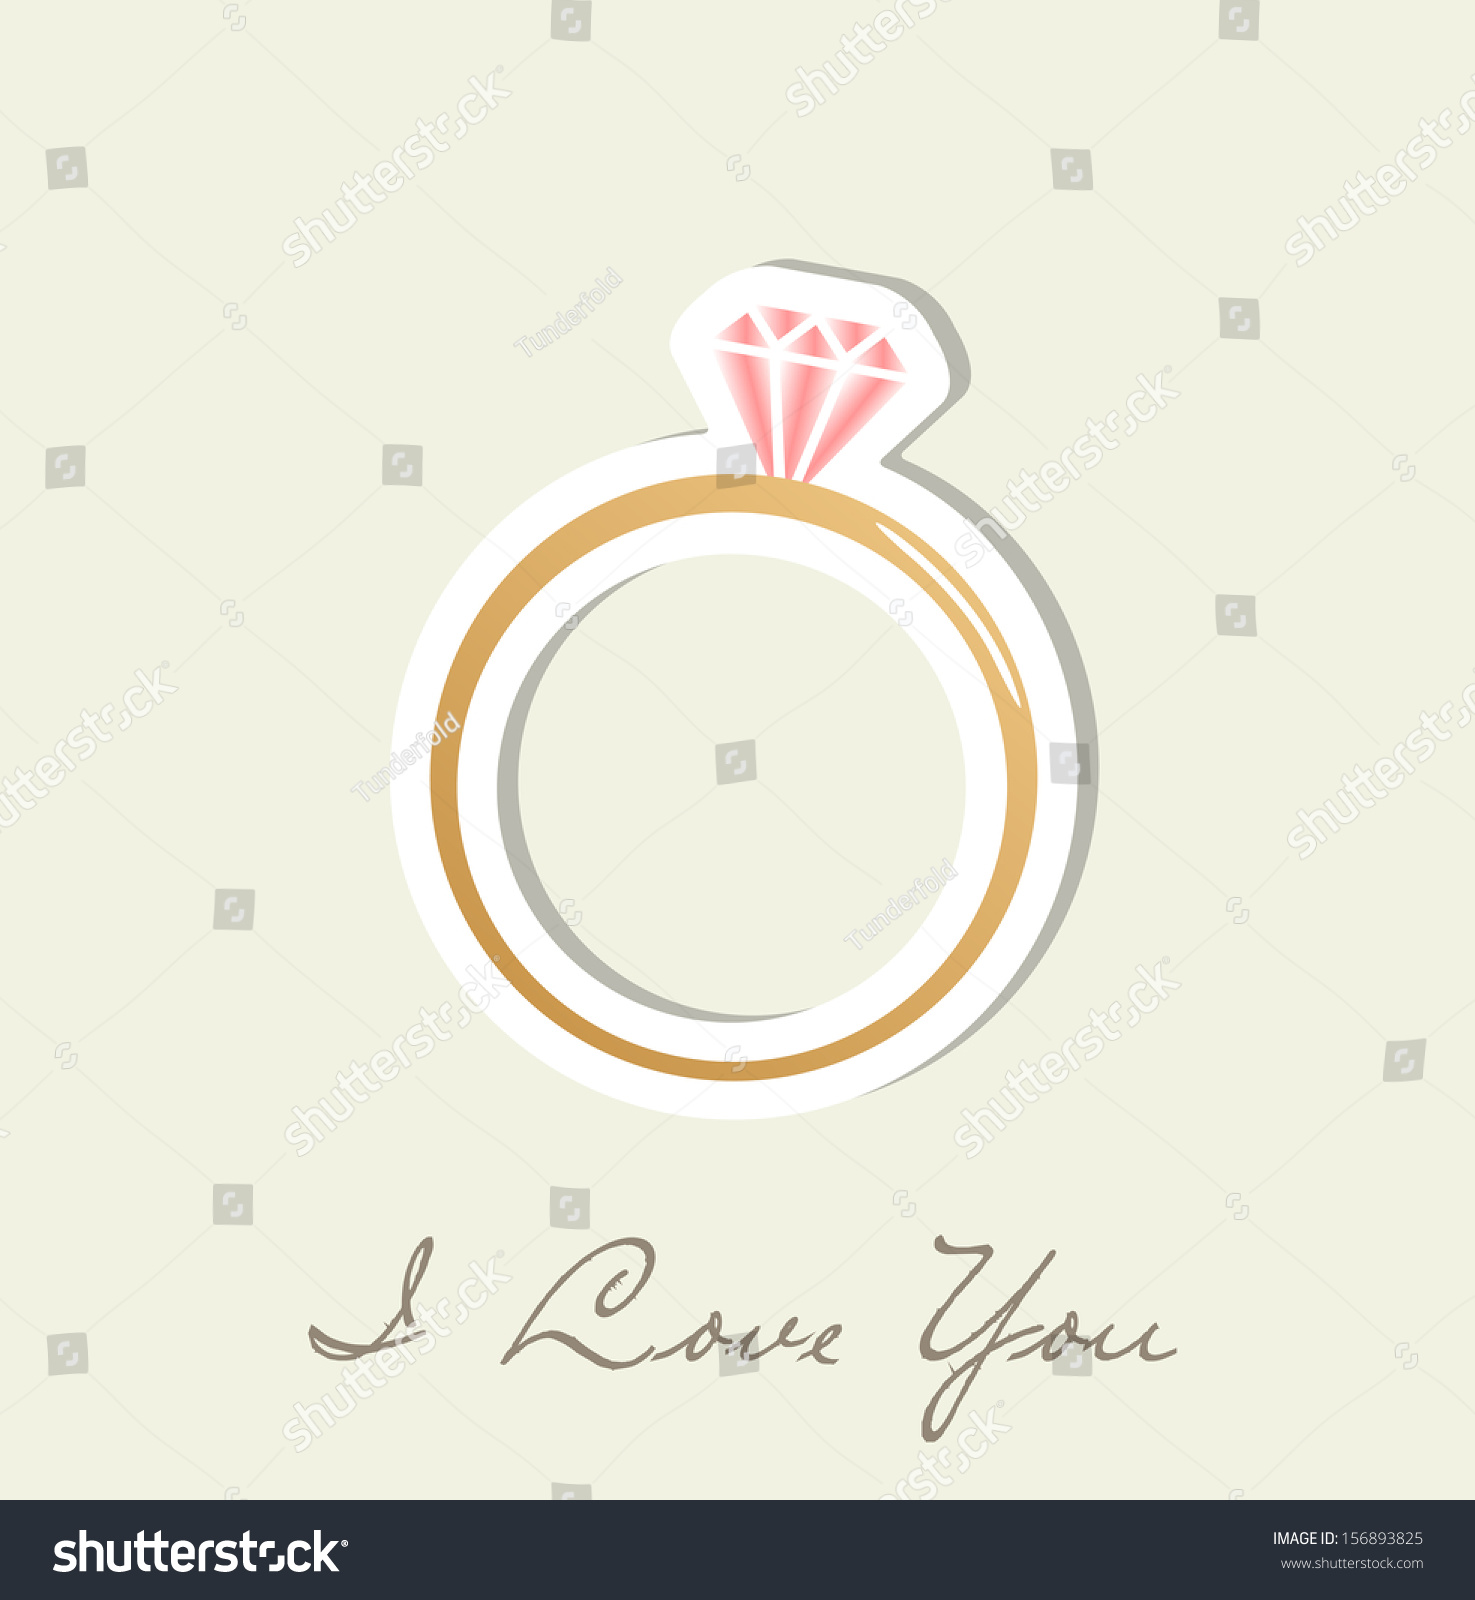 engagement ring vector - photo #24